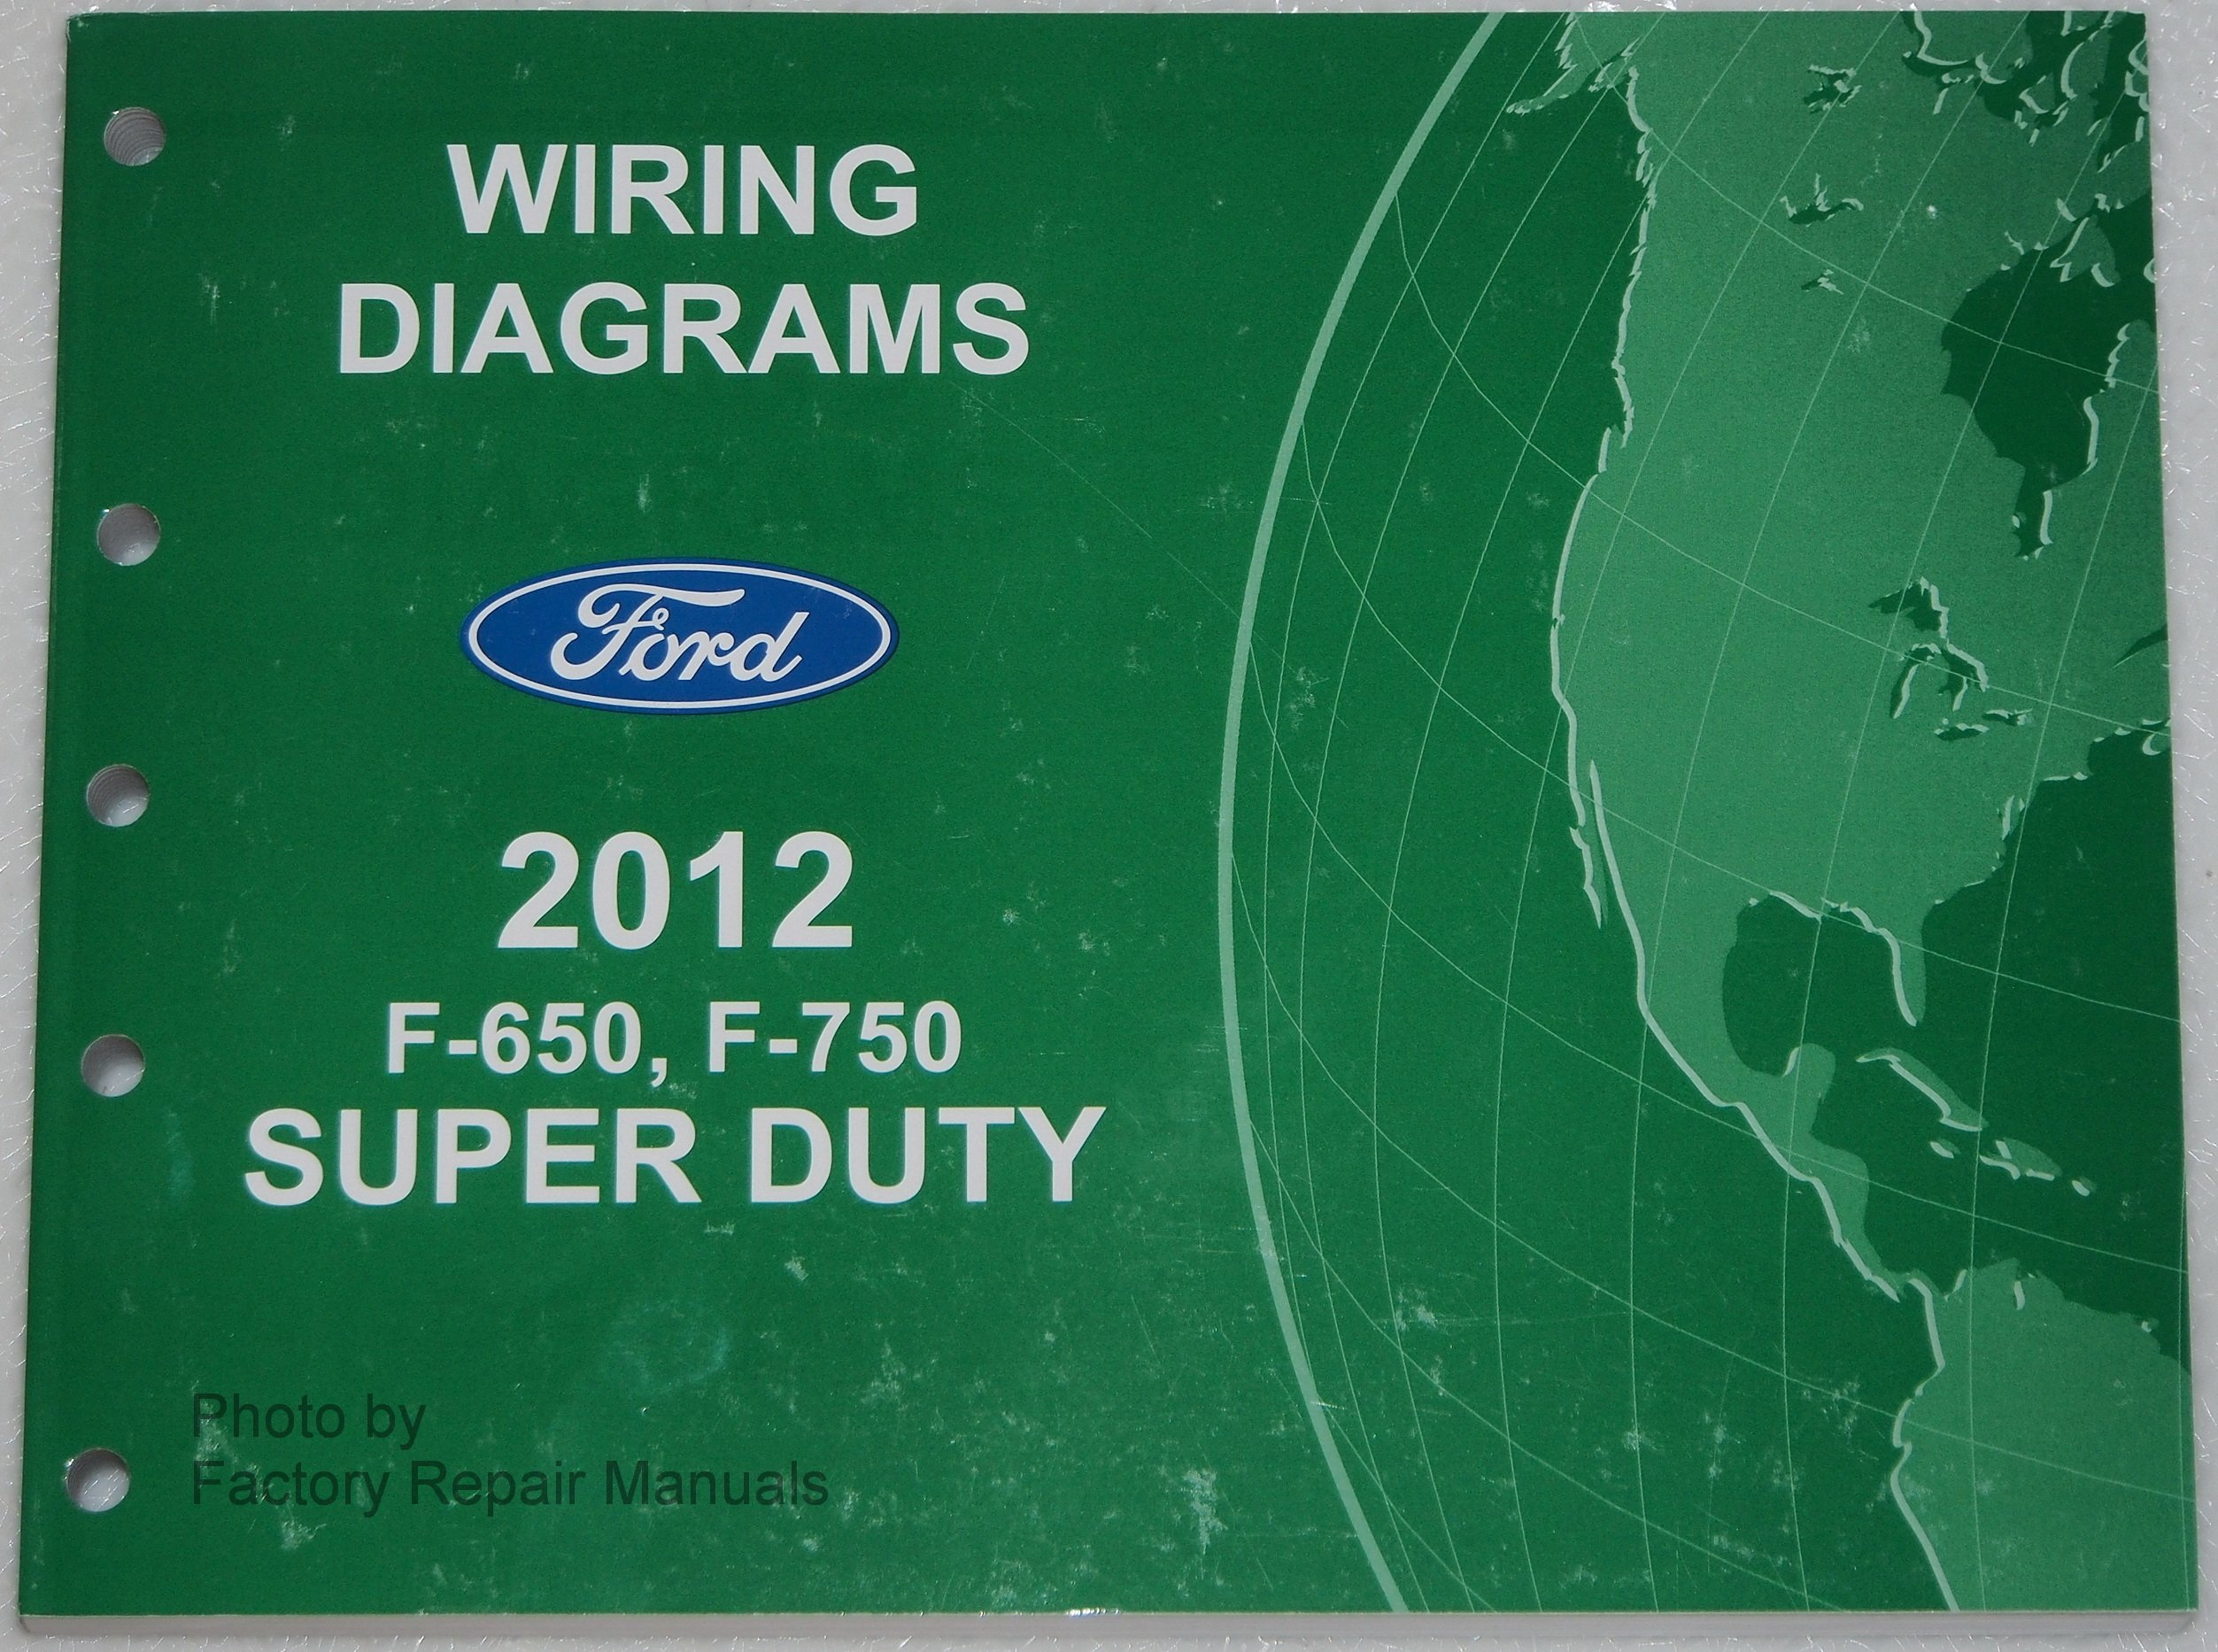 2012 f650 f750 wiring diagram ford motor company amazon com books rh amazon com ford f750 wiring diagram 2013 ford f750 wiring diagram